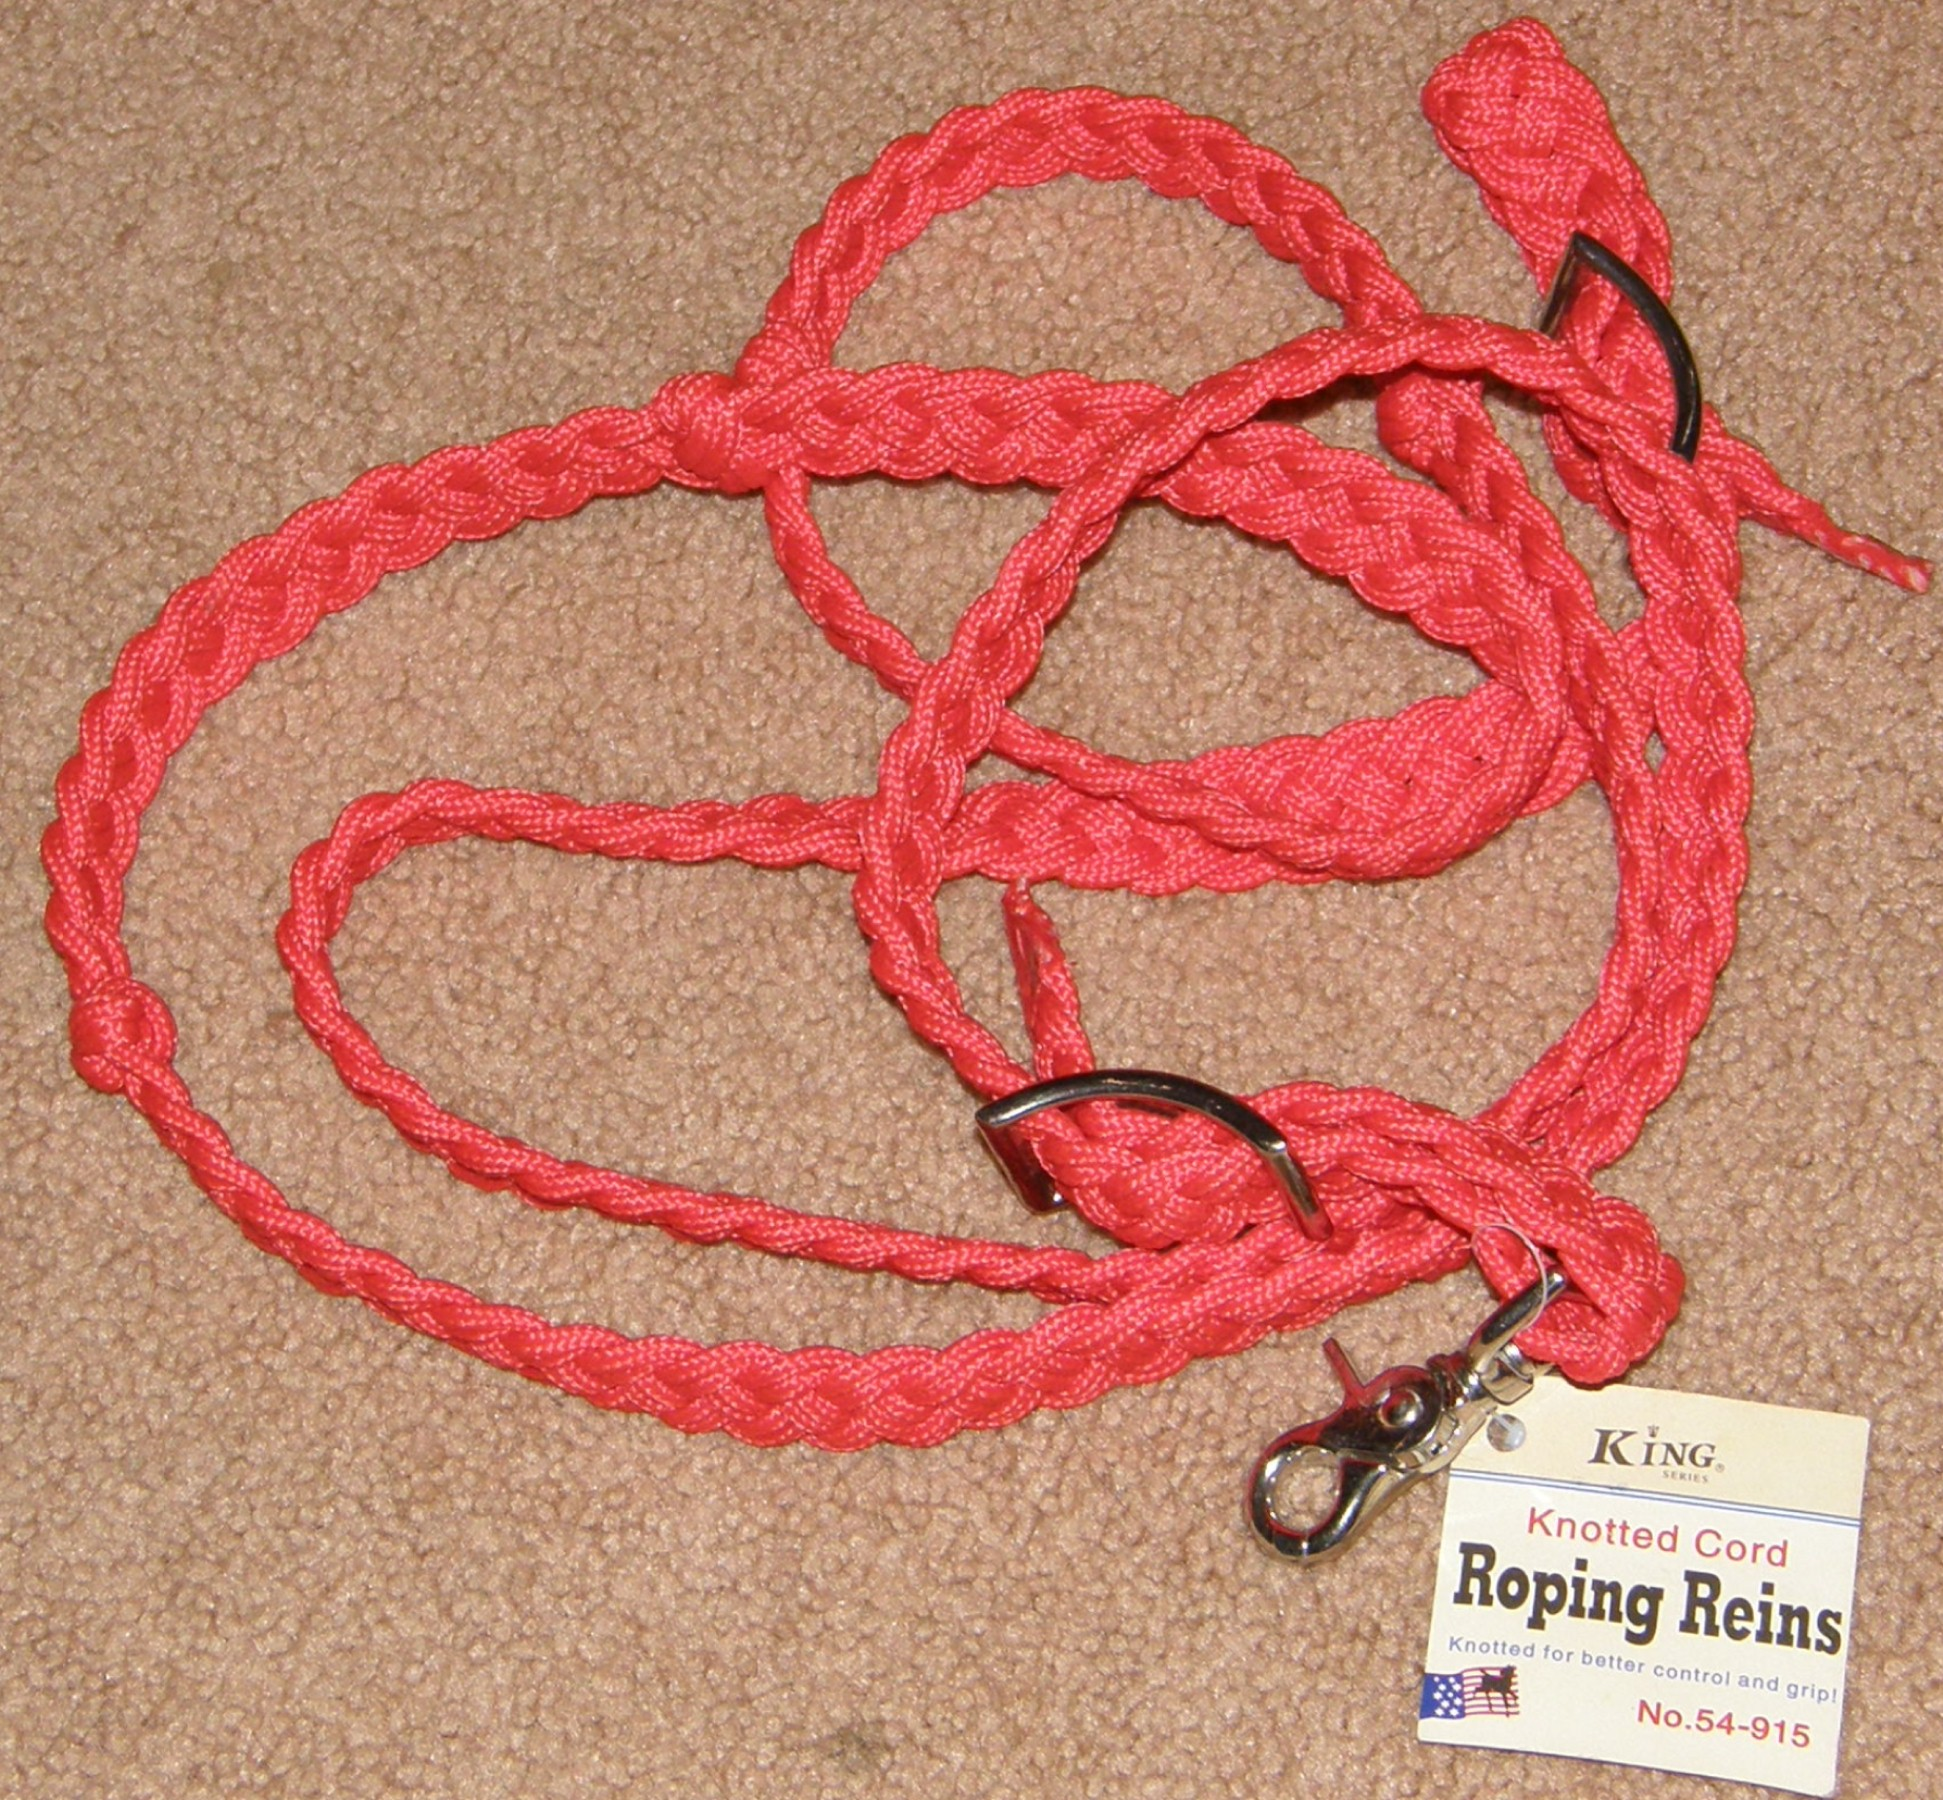 Royal King Knotted Cord Roping Reins Braided Cord Gaming Rein Red Purple Black